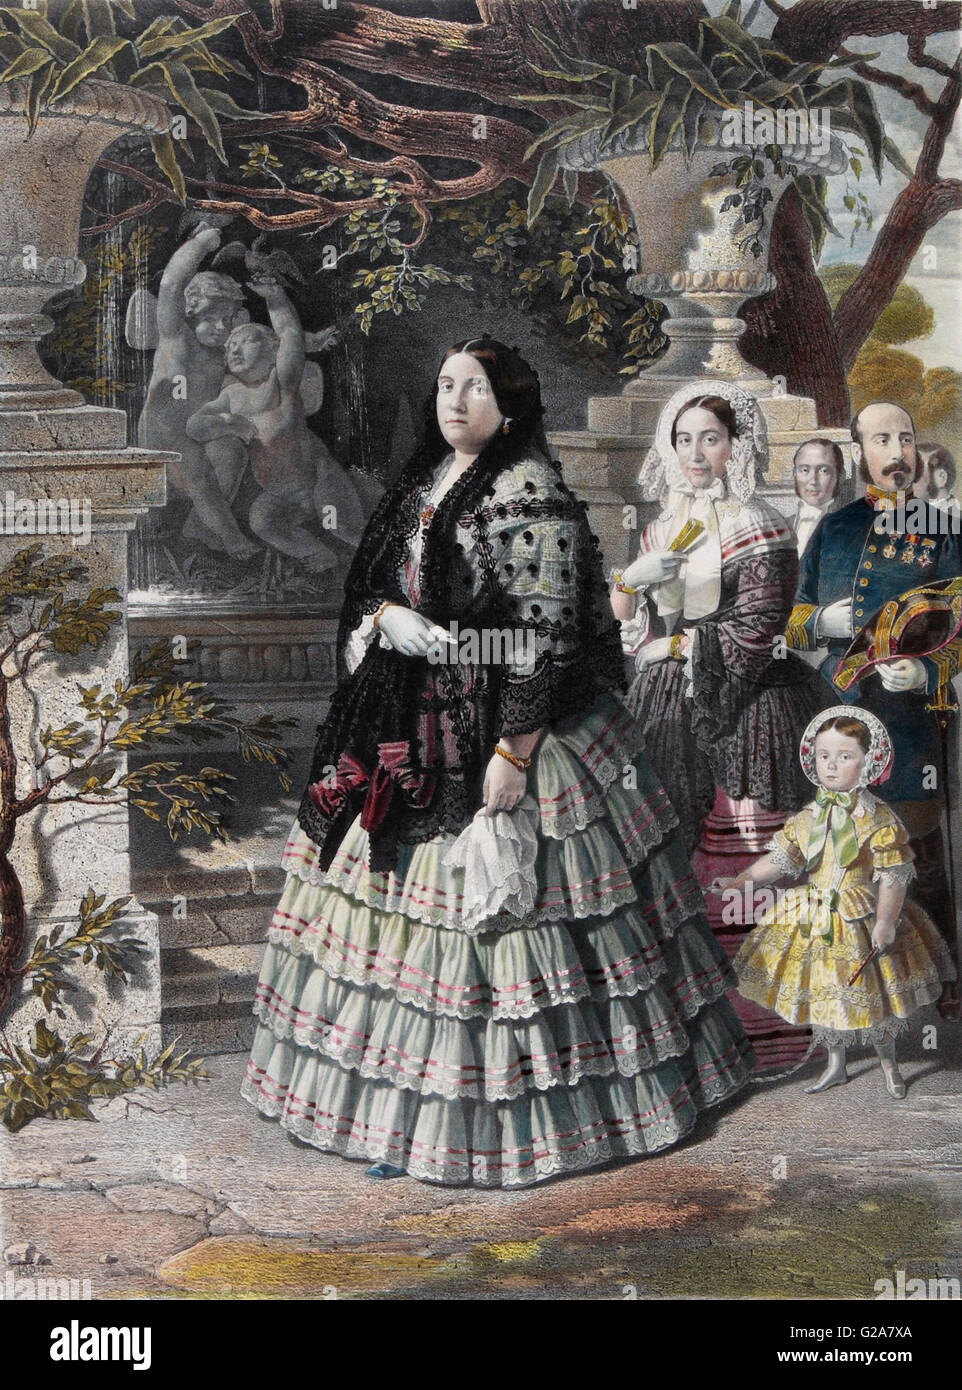 Bernardo Blanco y Pérez - HER MAJESTY THE QUEEN ISABEL II. and her august Daughter  - Museo del Romanticismo, - Stock Image